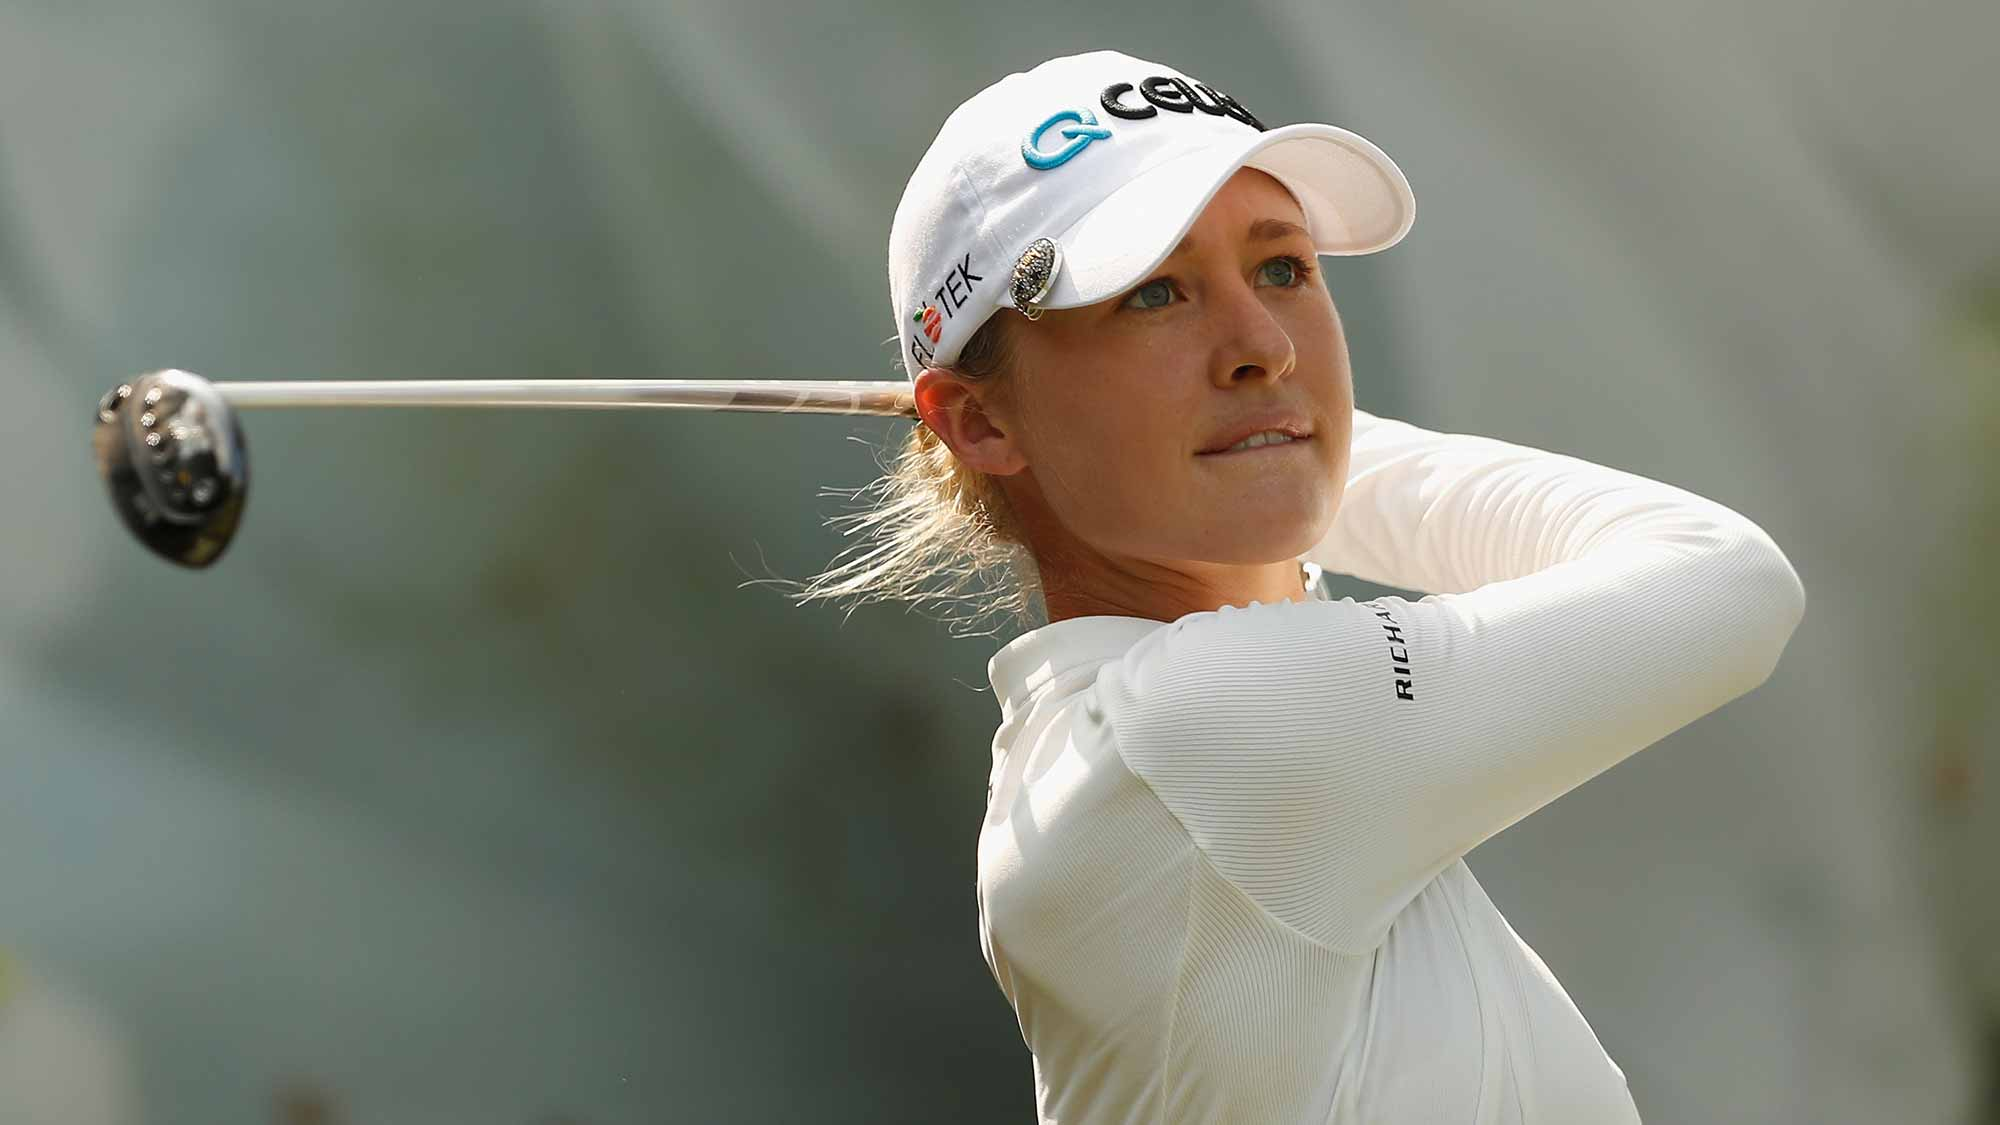 Nelly Korda of United States plays a shot during the second round of the Swinging Skirts LPGA Taiwan Championship at Ta Shee Golf & Country Club on October 26, 2018 in Taoyuan, Chinese Taipei